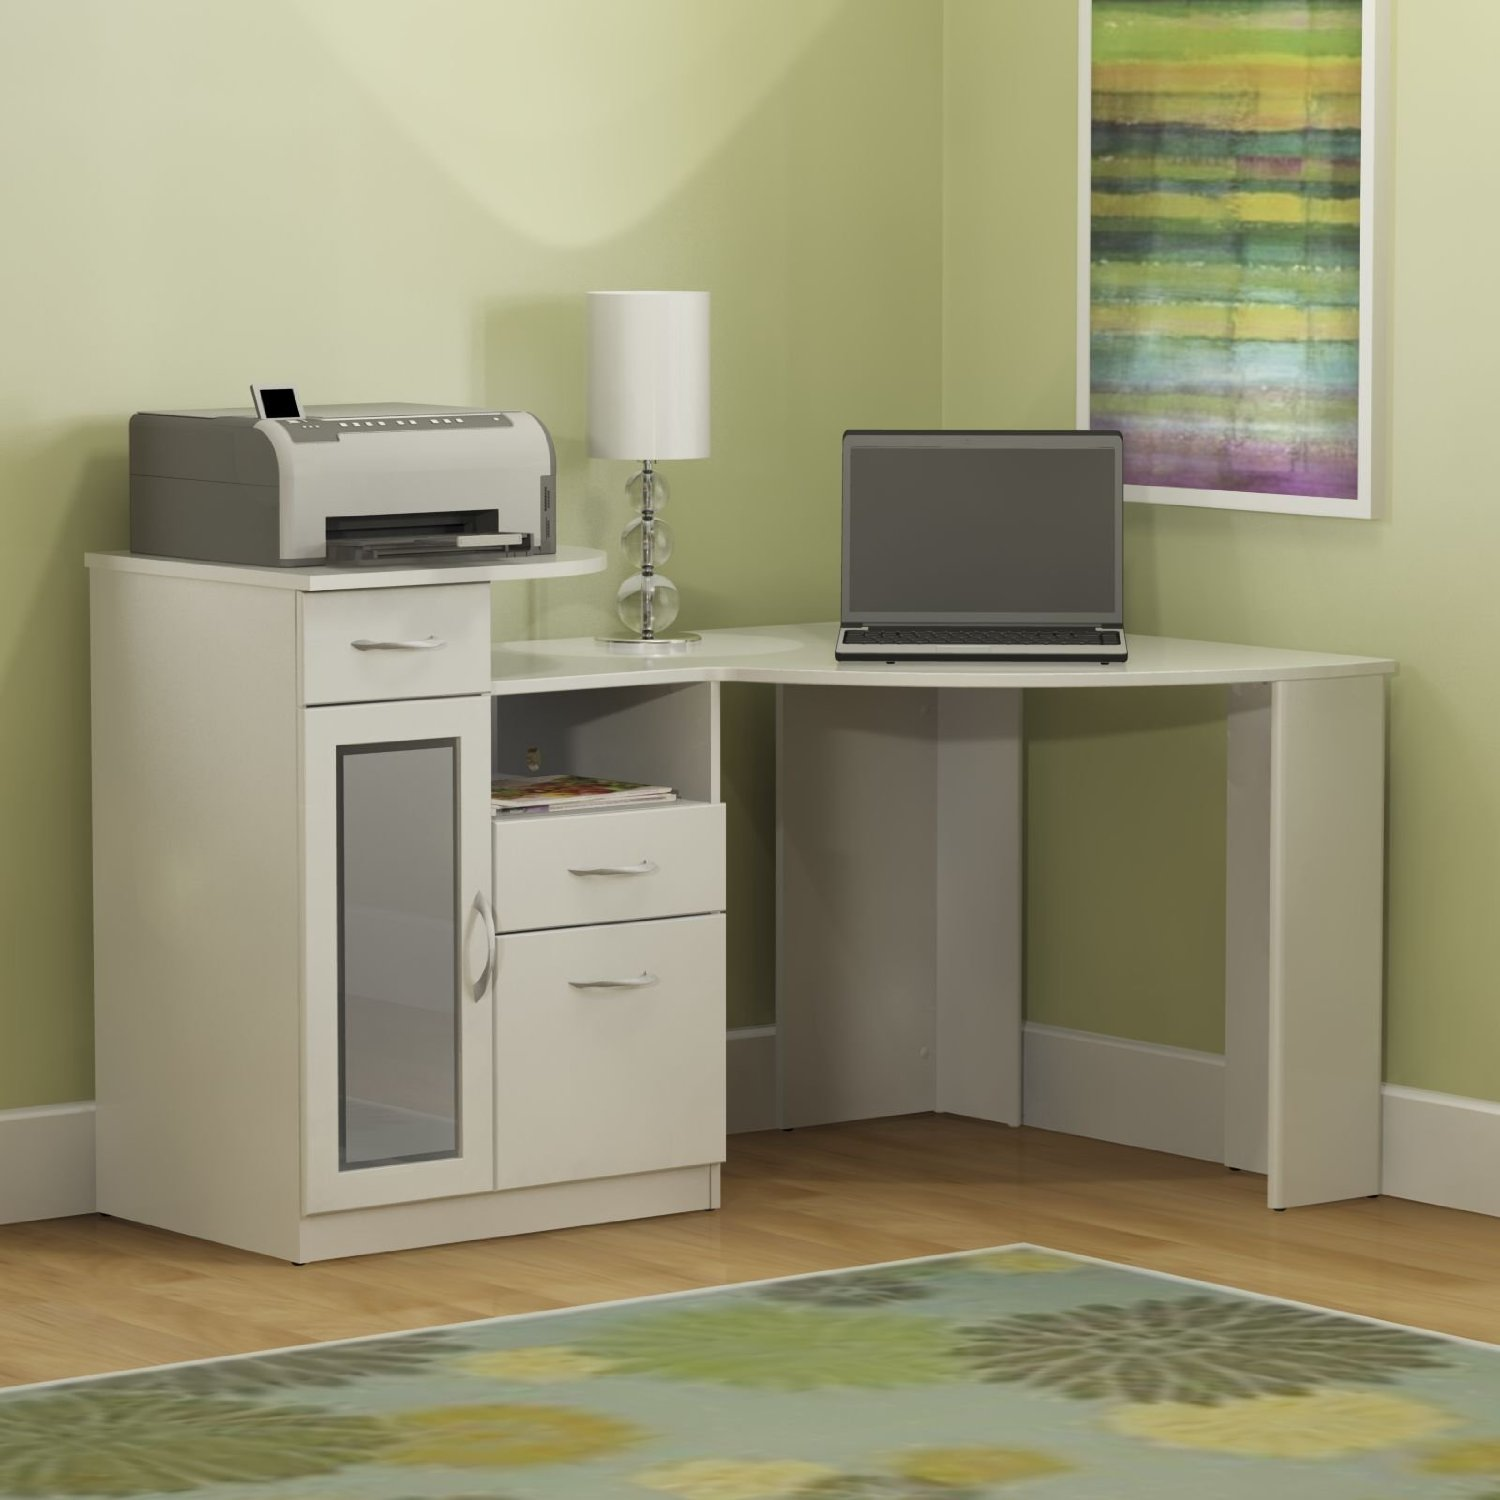 Luxurious White Computer Desk With Printer Storage And Sheleves For Files Stationary Soft Green Wall